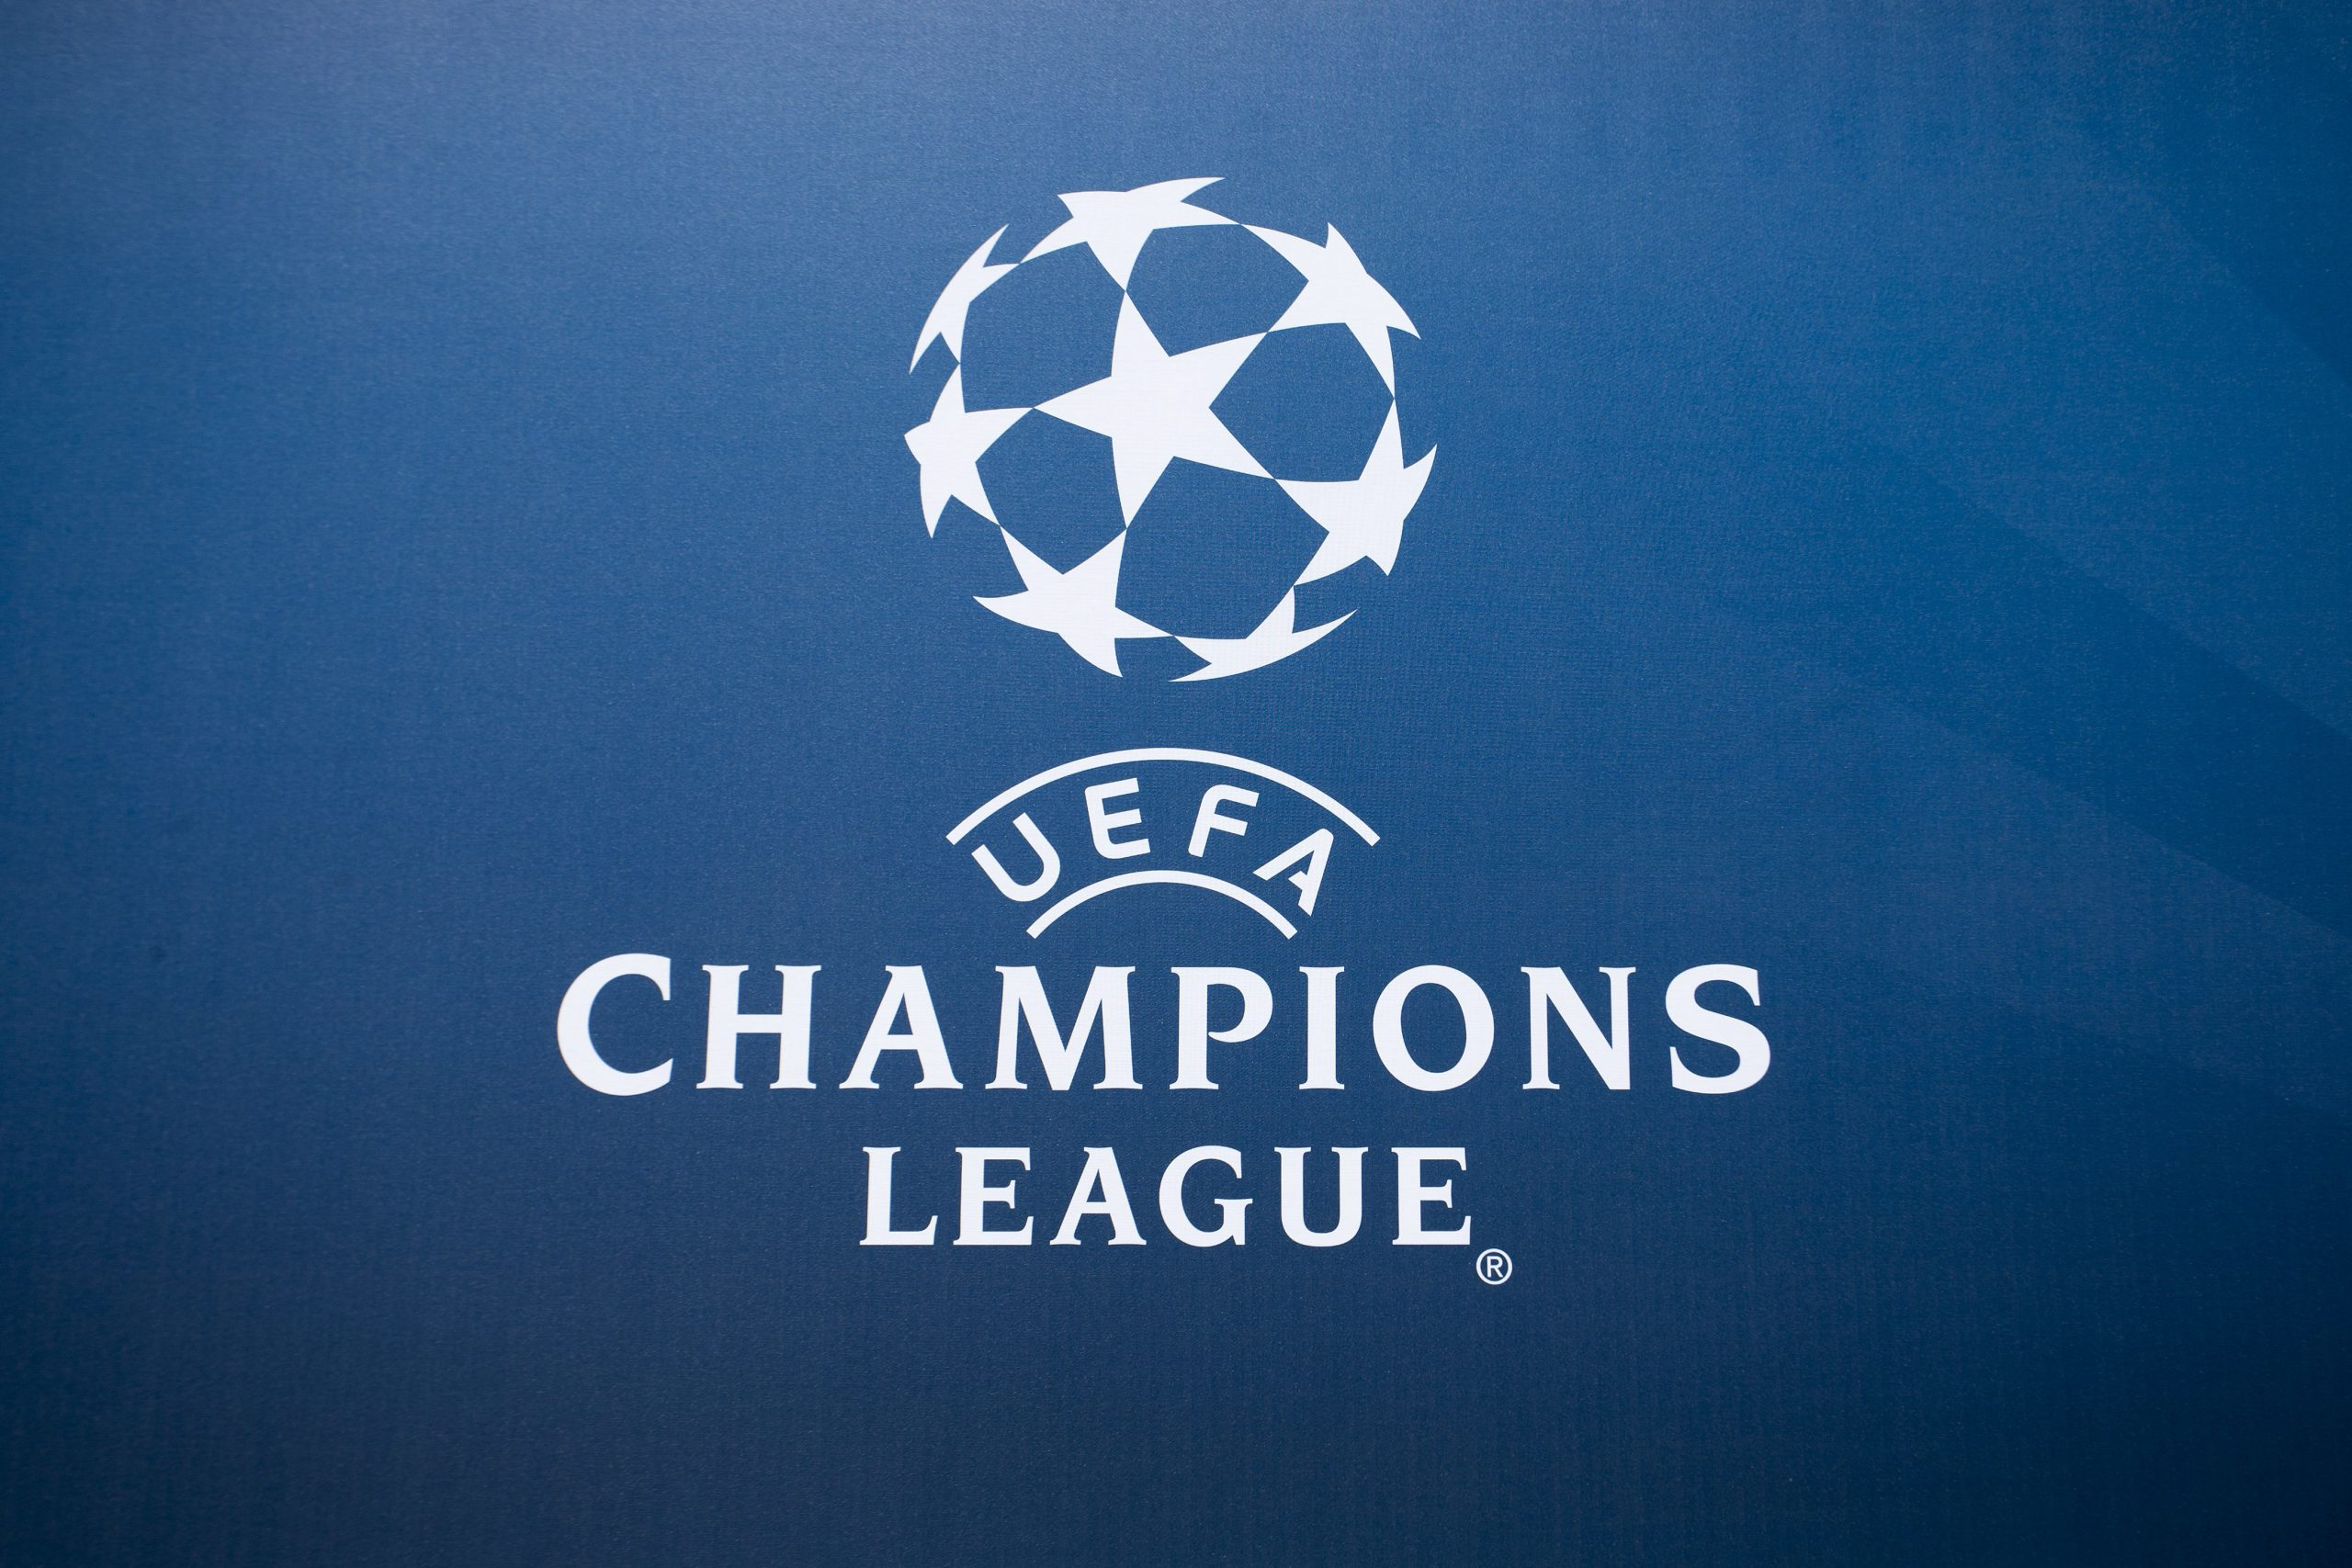 Streaming Dortmund/City et Liverpool/Real - Où voir les matchs en direct